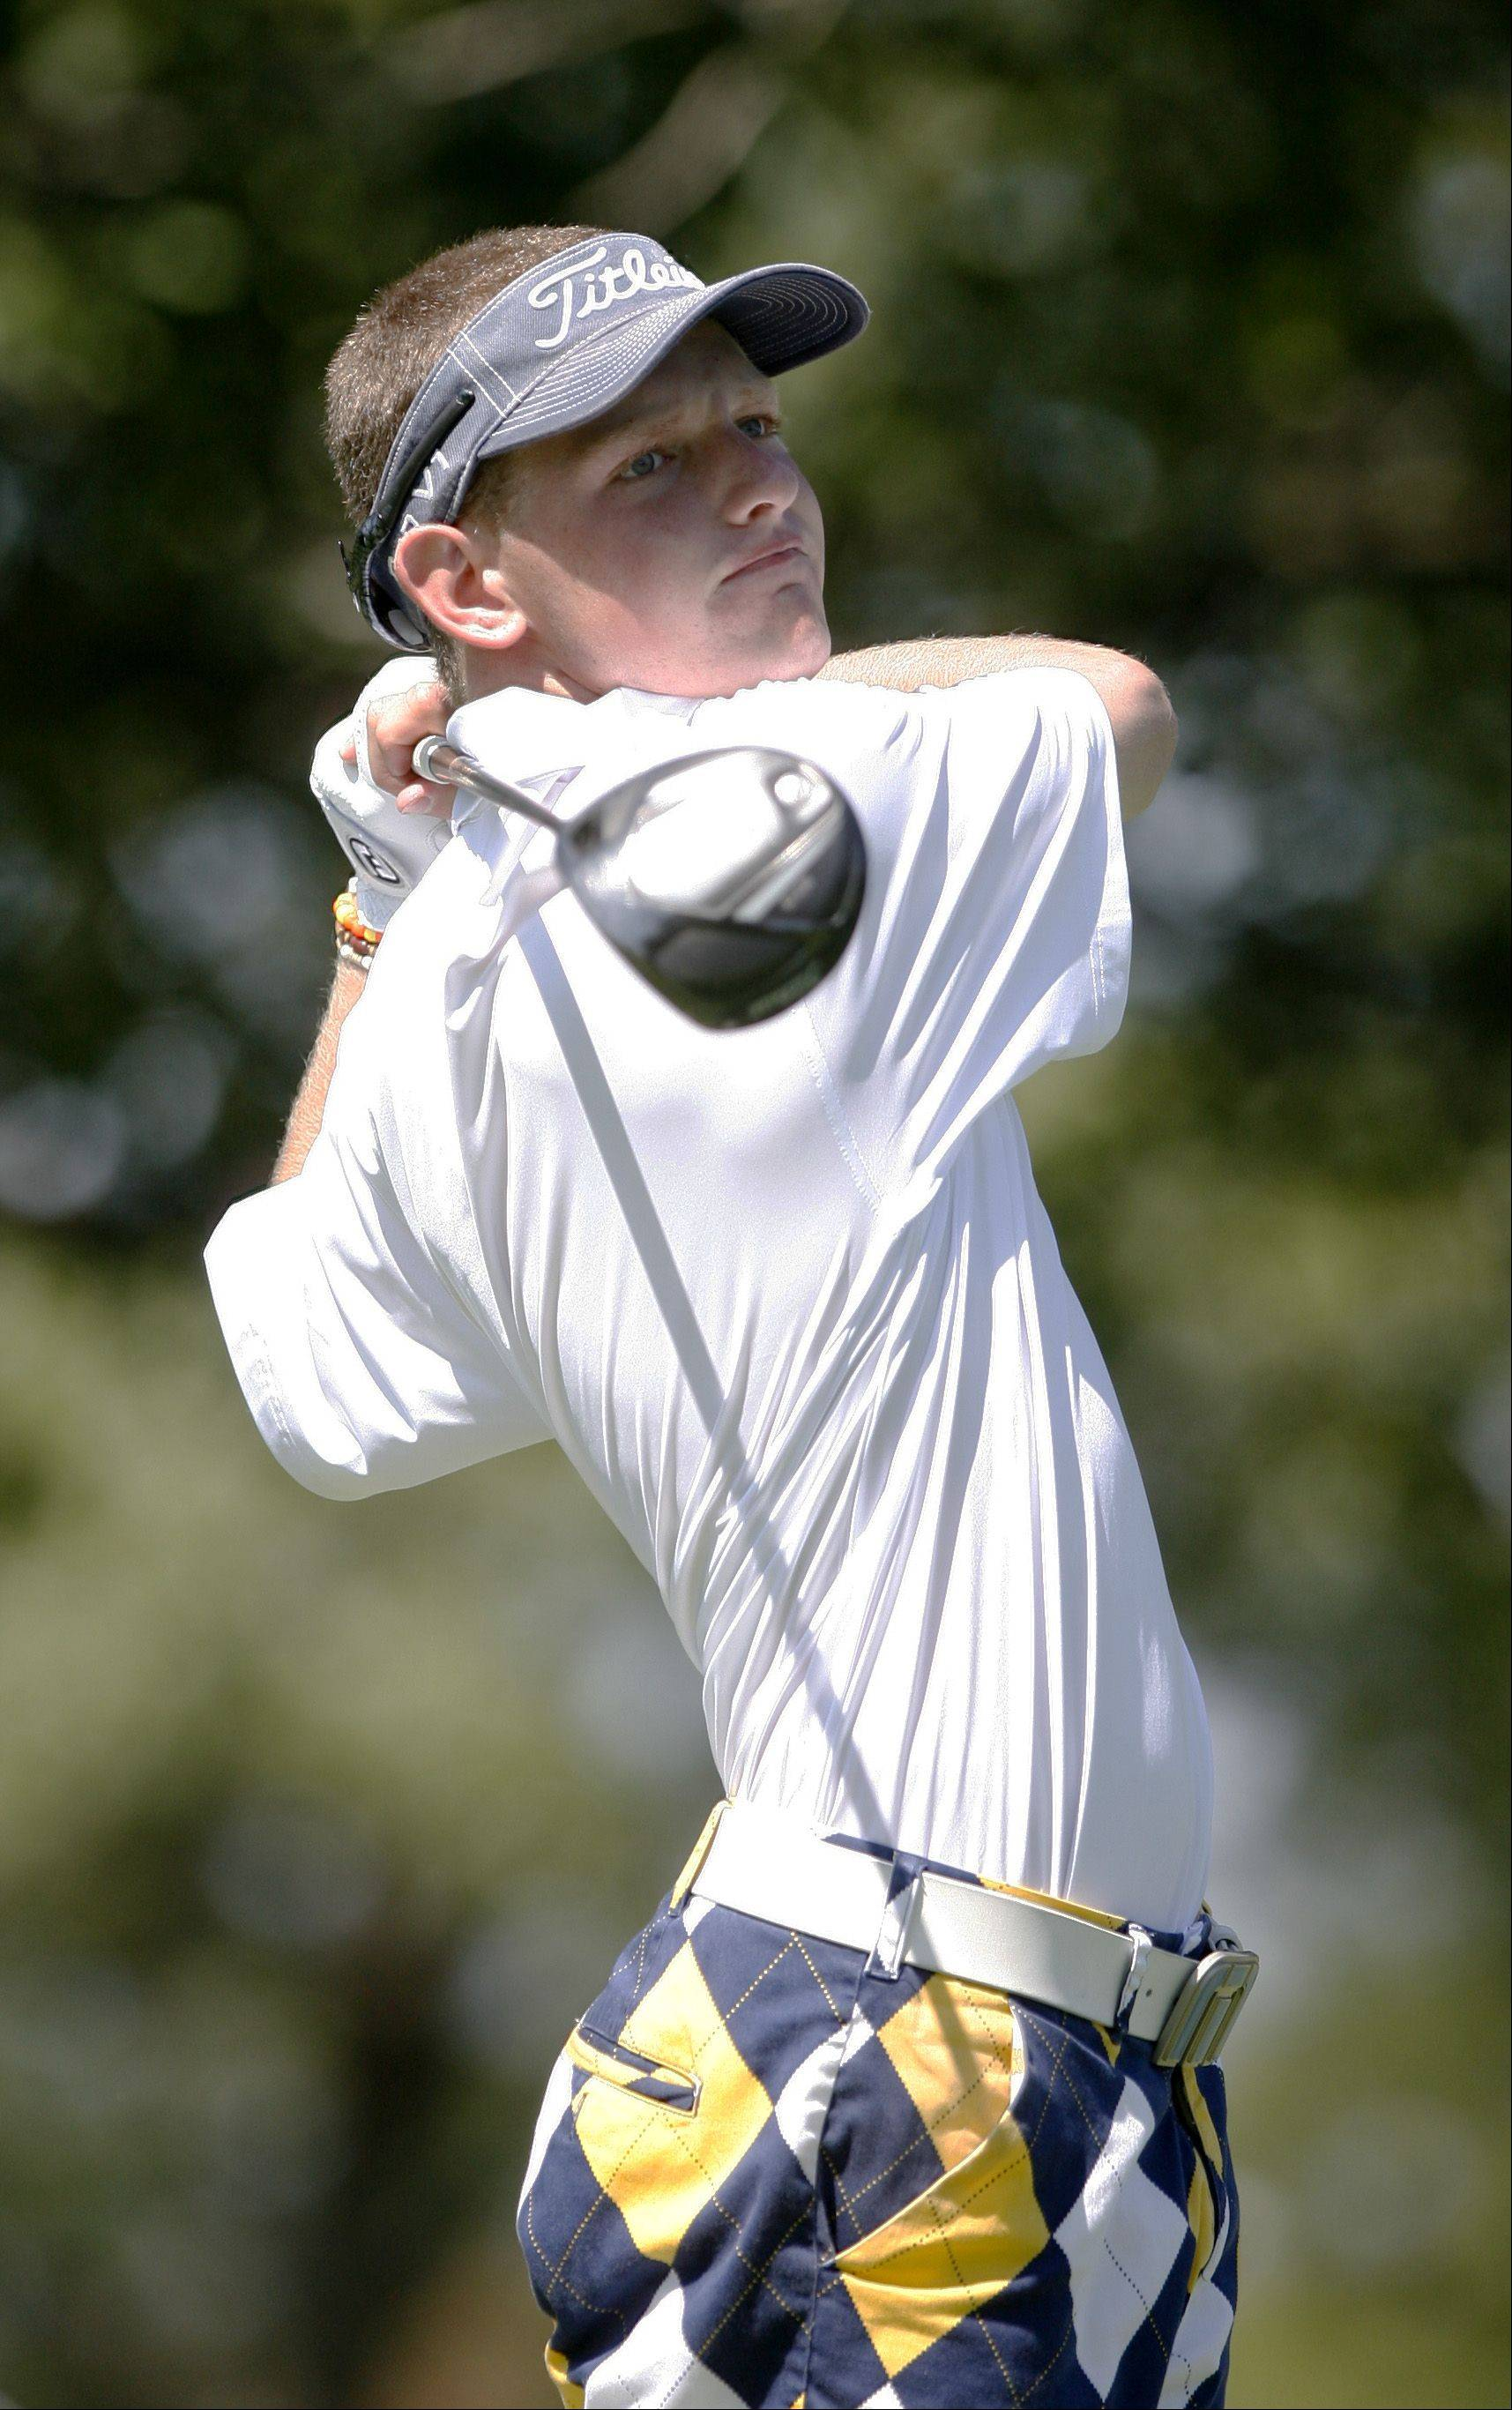 Daniel White/dwhite@dailyherald.comNeuqua Valley's Nick Rouches tees off during the Vern McGonagle Memorial High School Golf Championship, held at the Naperville Country Club.